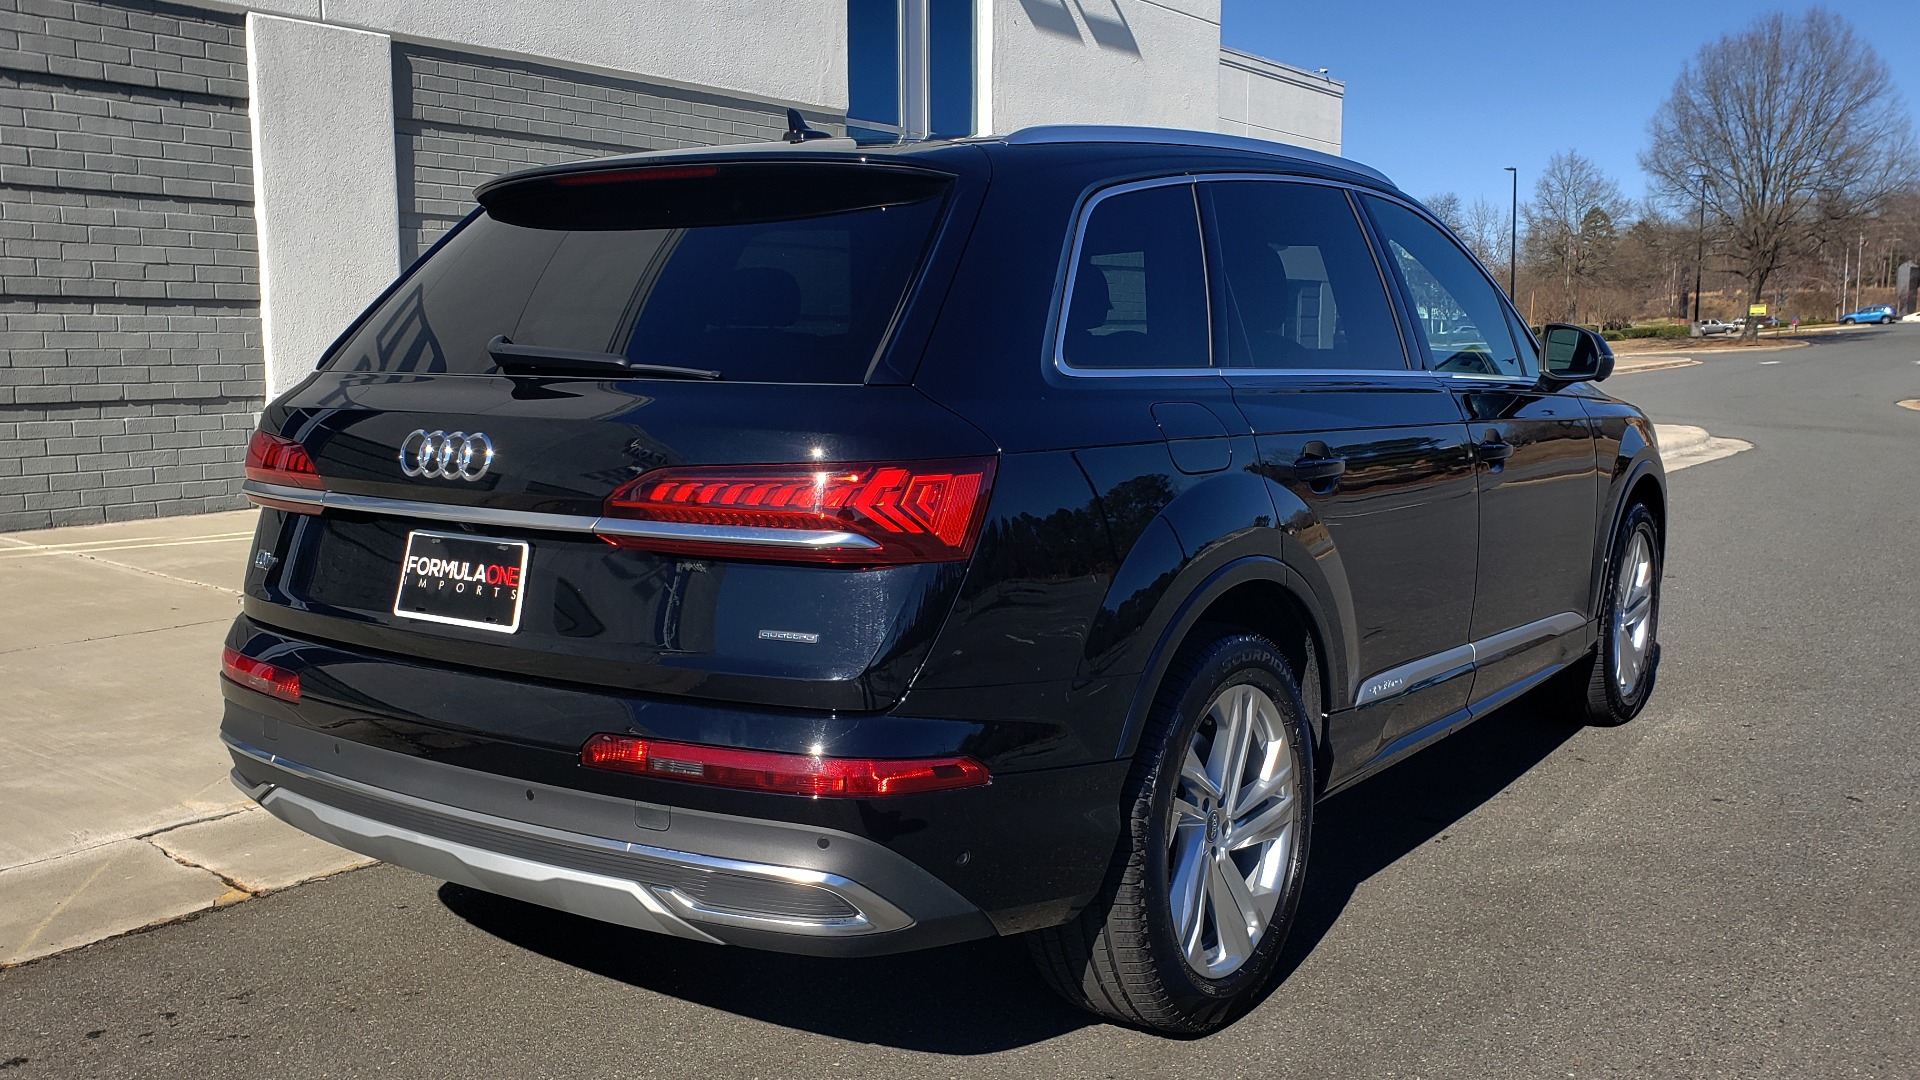 Used 2020 Audi Q7 PREMIUM PLUS / NAV / SUNROOF / 3-ROW / REARVIEW for sale $50,695 at Formula Imports in Charlotte NC 28227 7